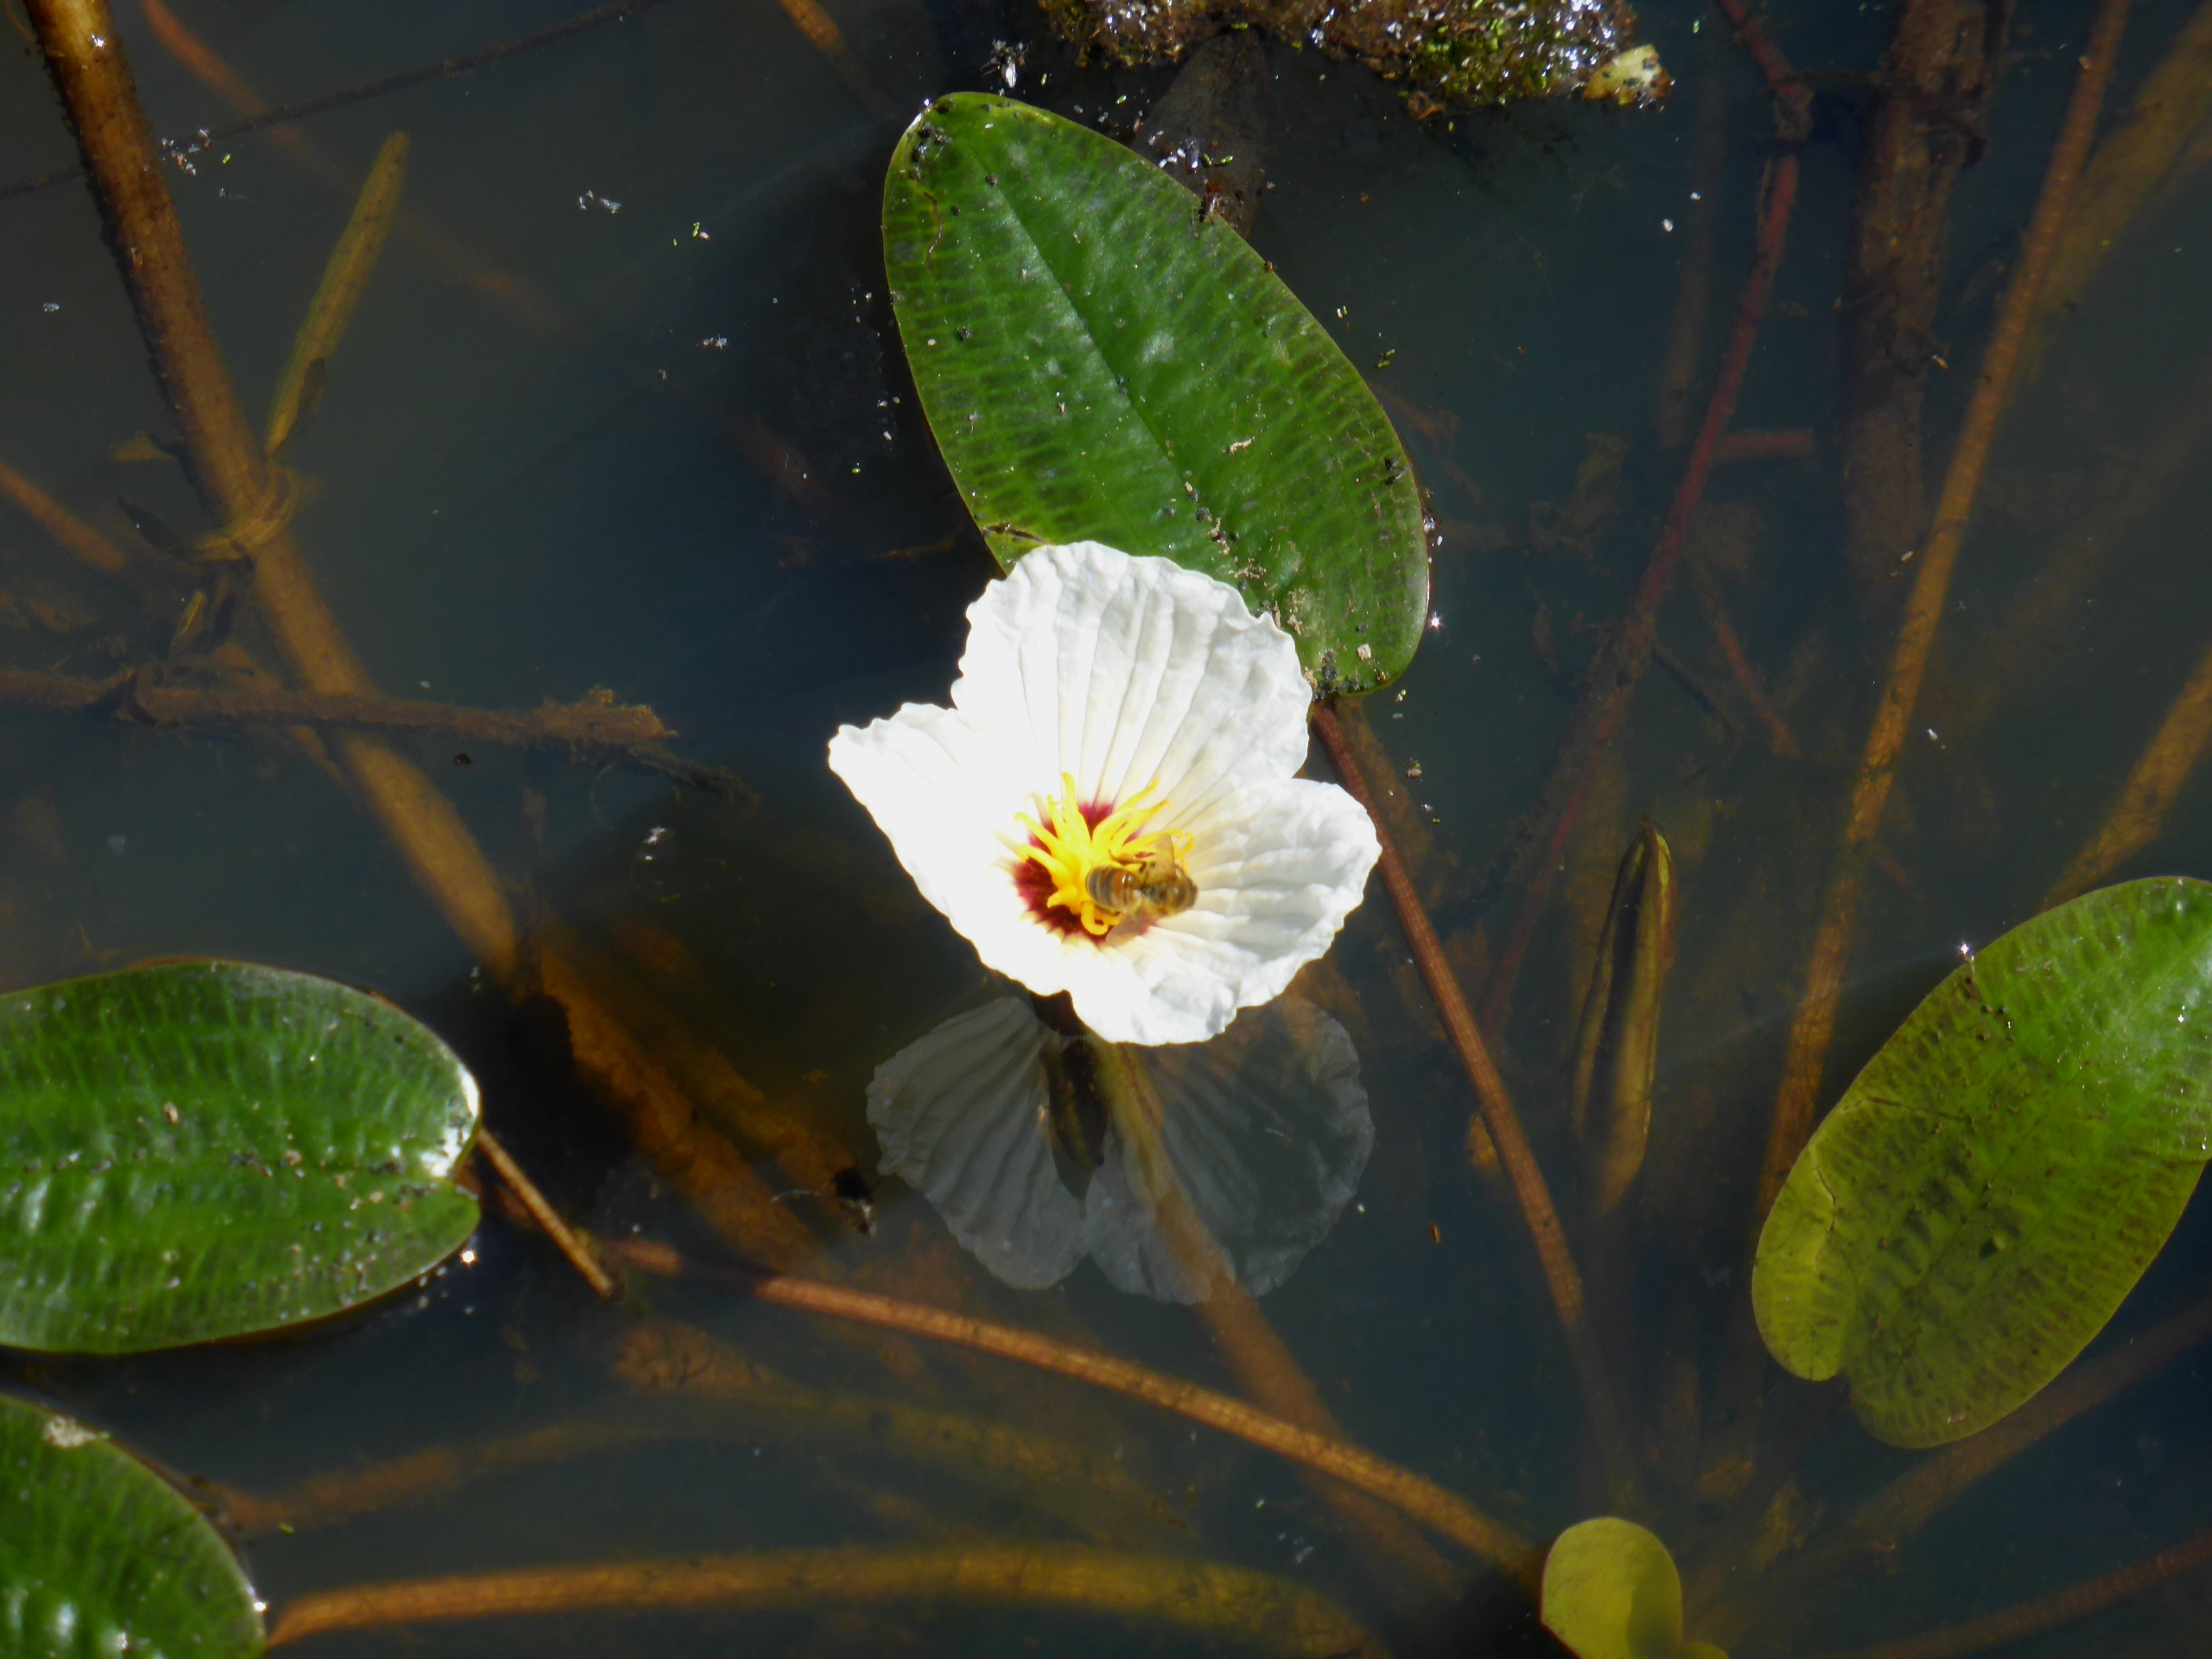 Australian plants society nsw ottelia ovalifolia swamp lily ottelia ovalifolia swamp lily is a tufted aquatic perennial with floating and submerged leaves and flowers the visible leaves are strap like izmirmasajfo